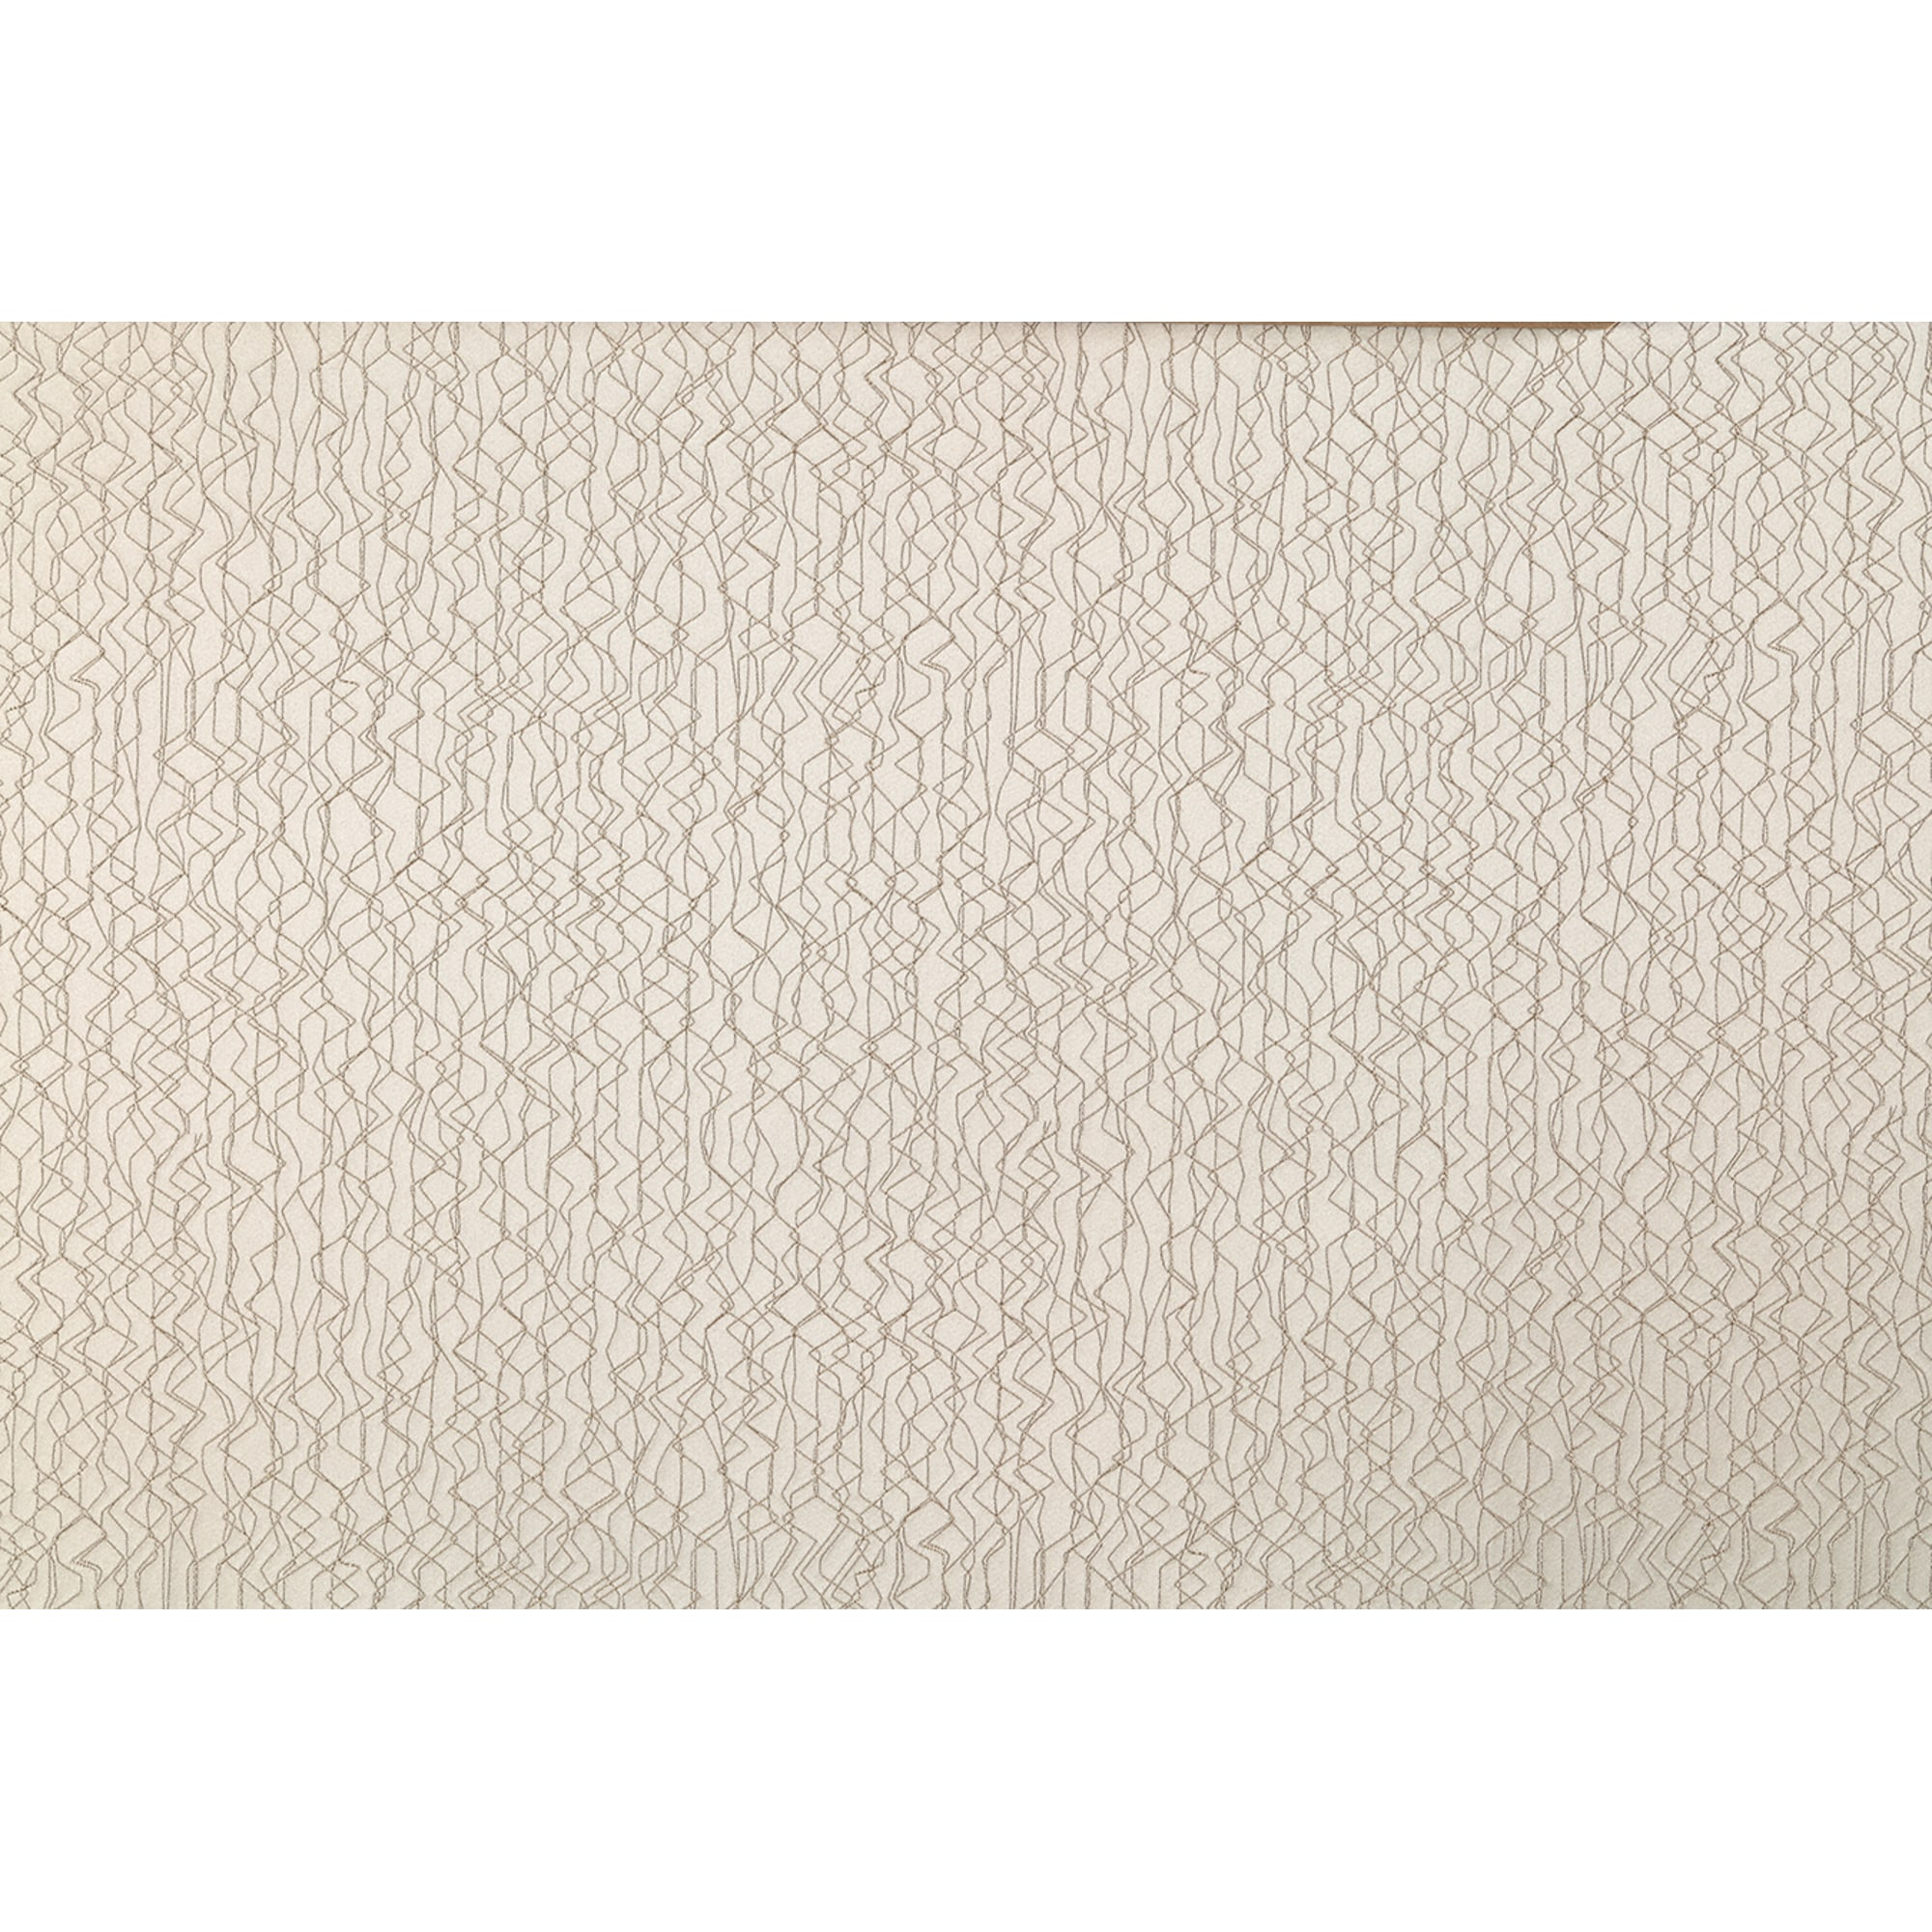 Image for 4030-073 Freehand Beige from Hekman Official Website